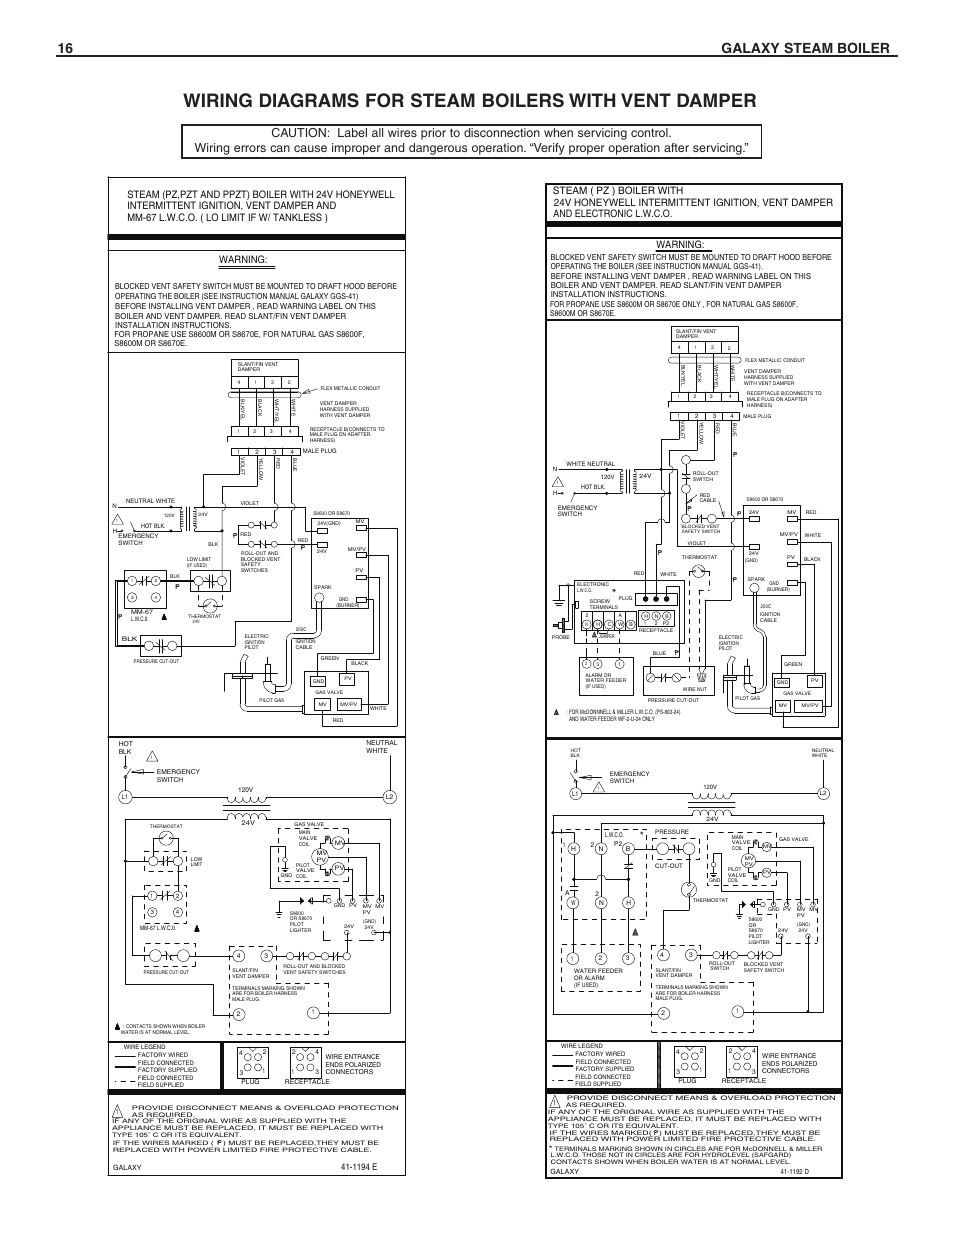 slant_fin-gxha-200-page16 Water Feeder Wiring Diagram on service diagram, genesis diagram, control diagram, power diagram, mill diagram, conveyor diagram, bus diagram, wheel diagram, breaker diagram, food diagram, boat diagram, fan diagram, fuel diagram, fish diagram, filter diagram, tractor diagram, motor diagram, house diagram, silo diagram, mixer diagram,